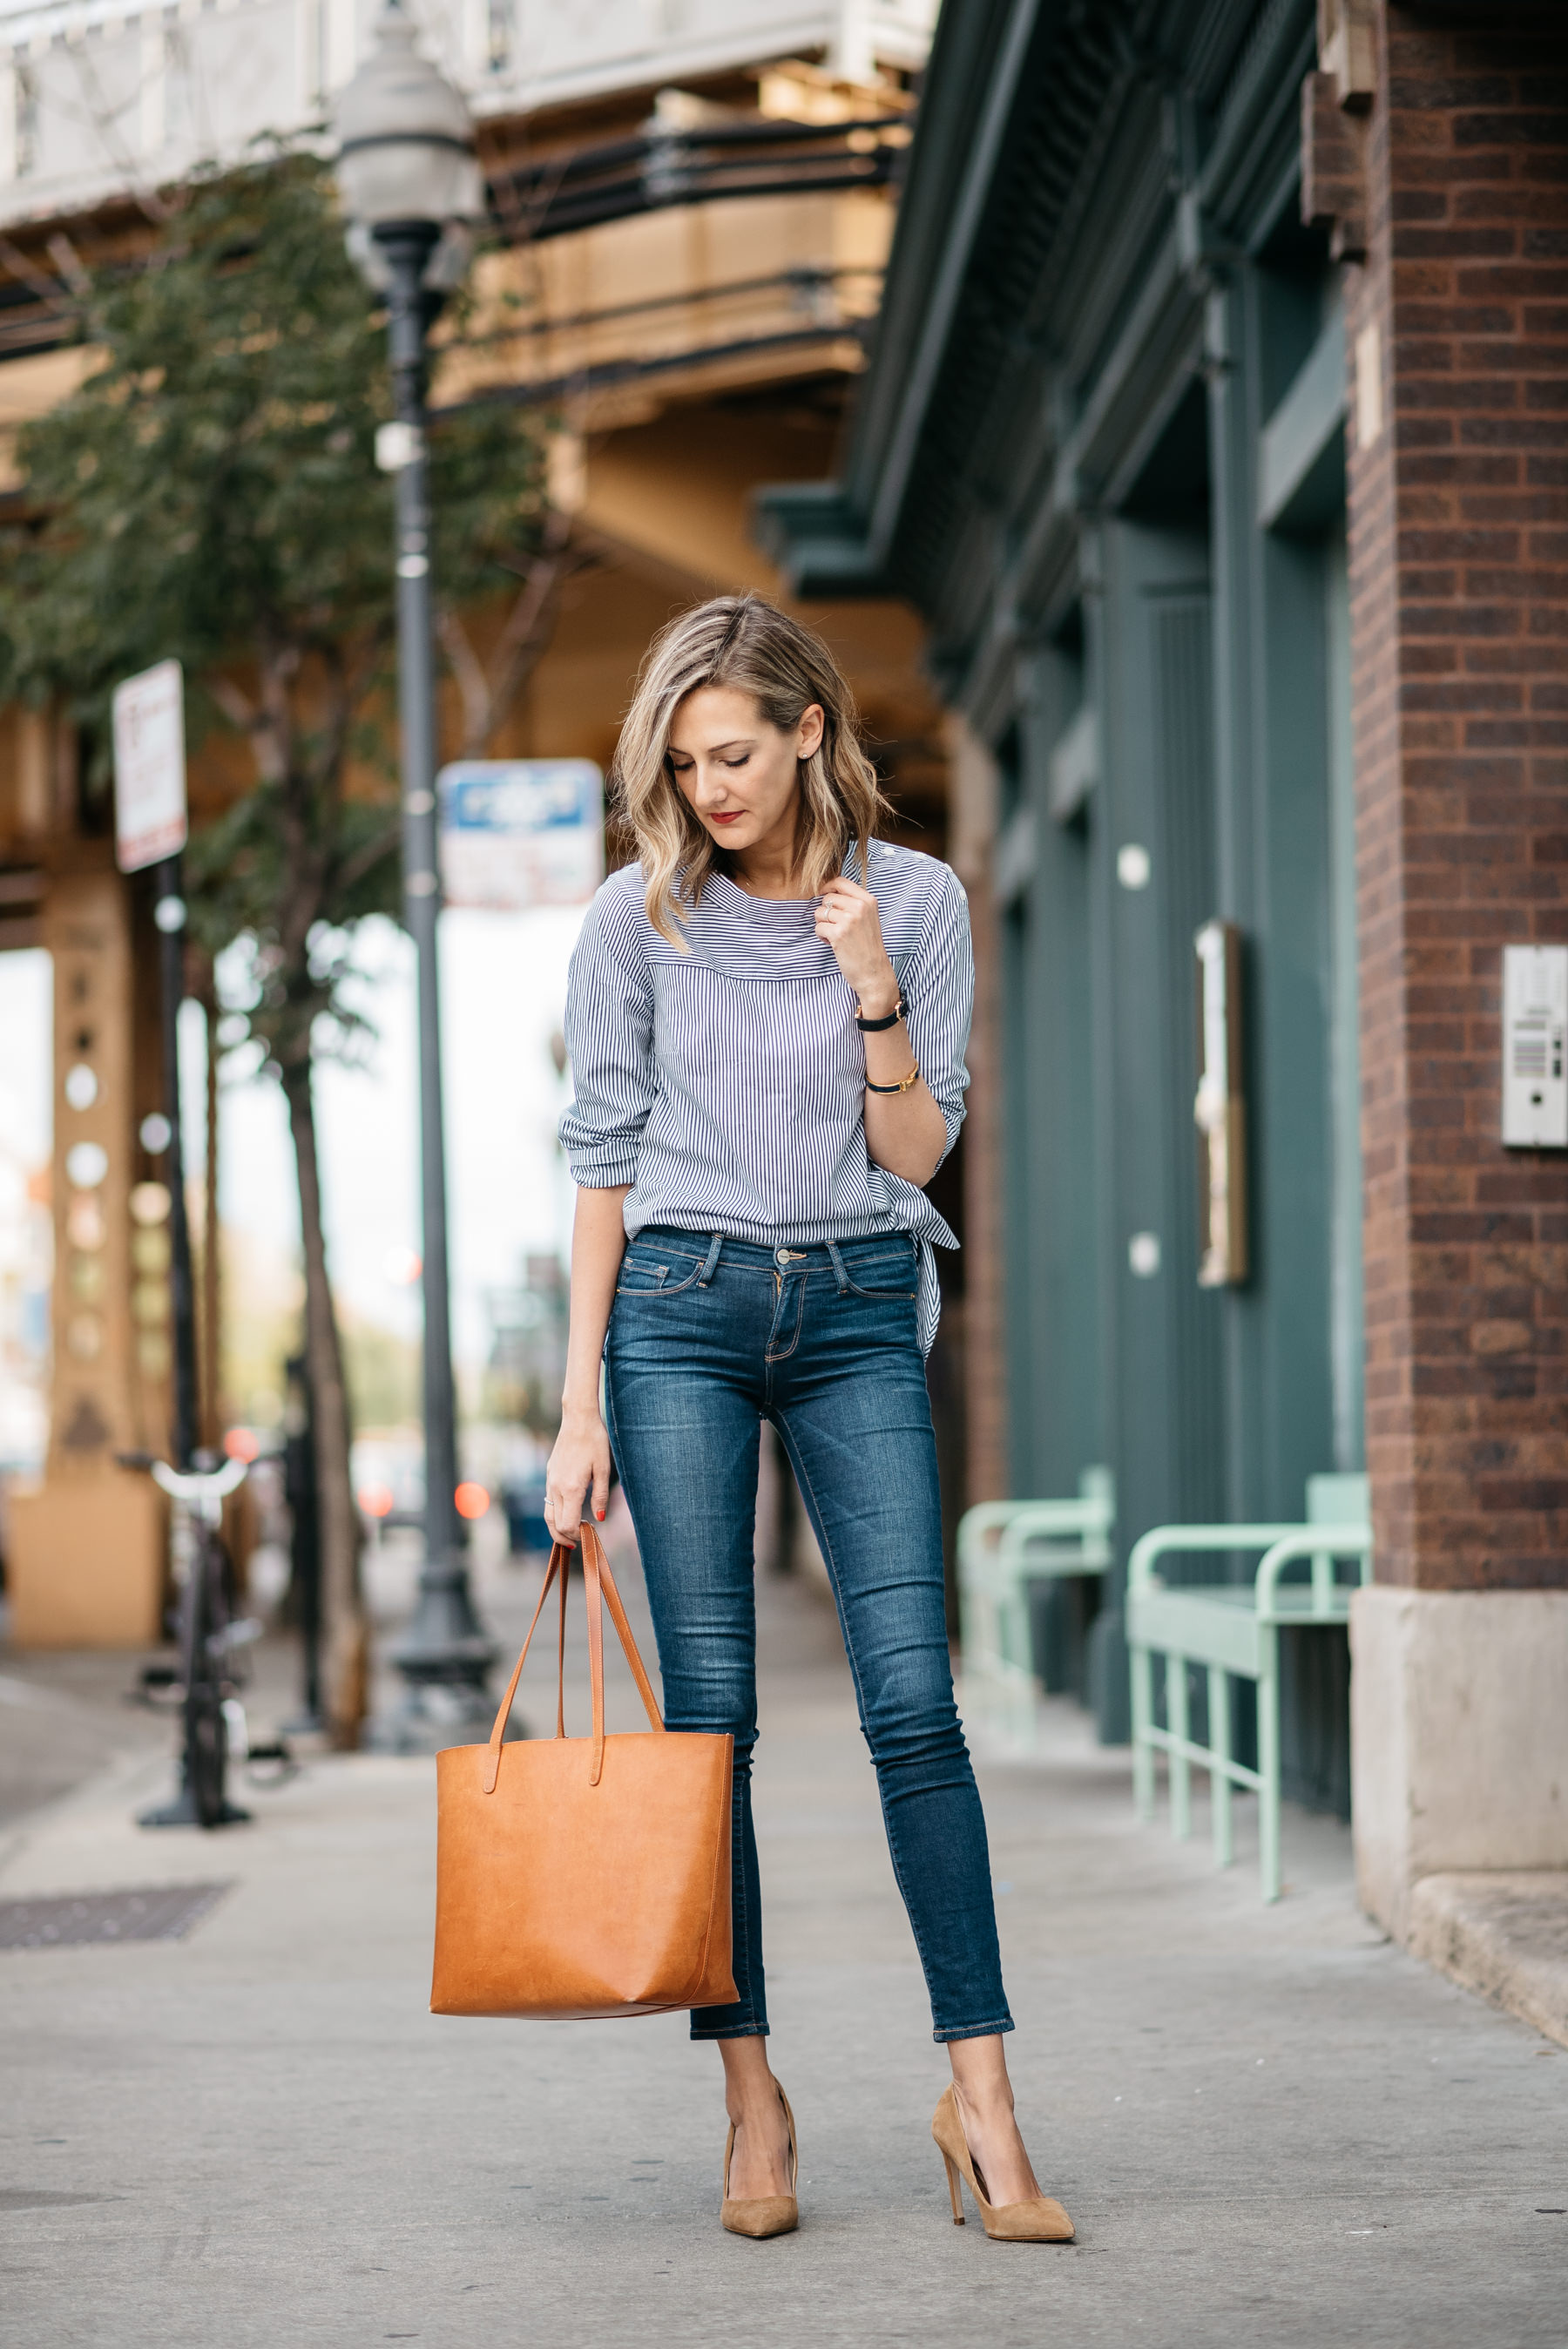 classic shirt and jeans fall style